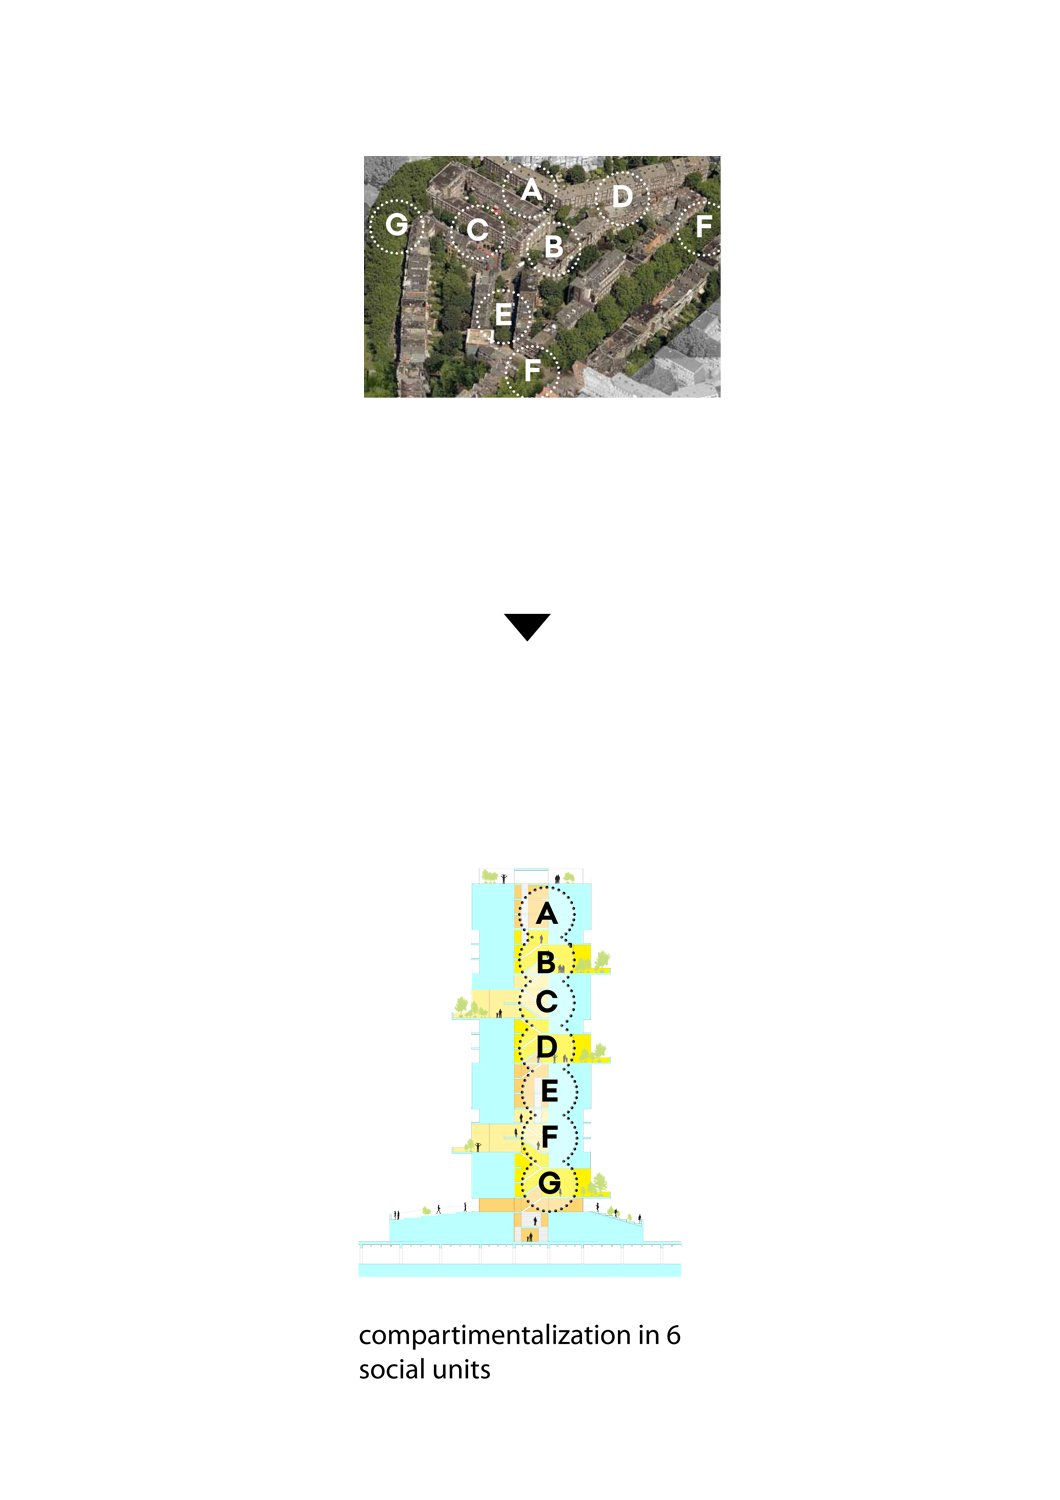 diagram: compartimentalization of the building in 6 social units, following the similar compartiment into streets